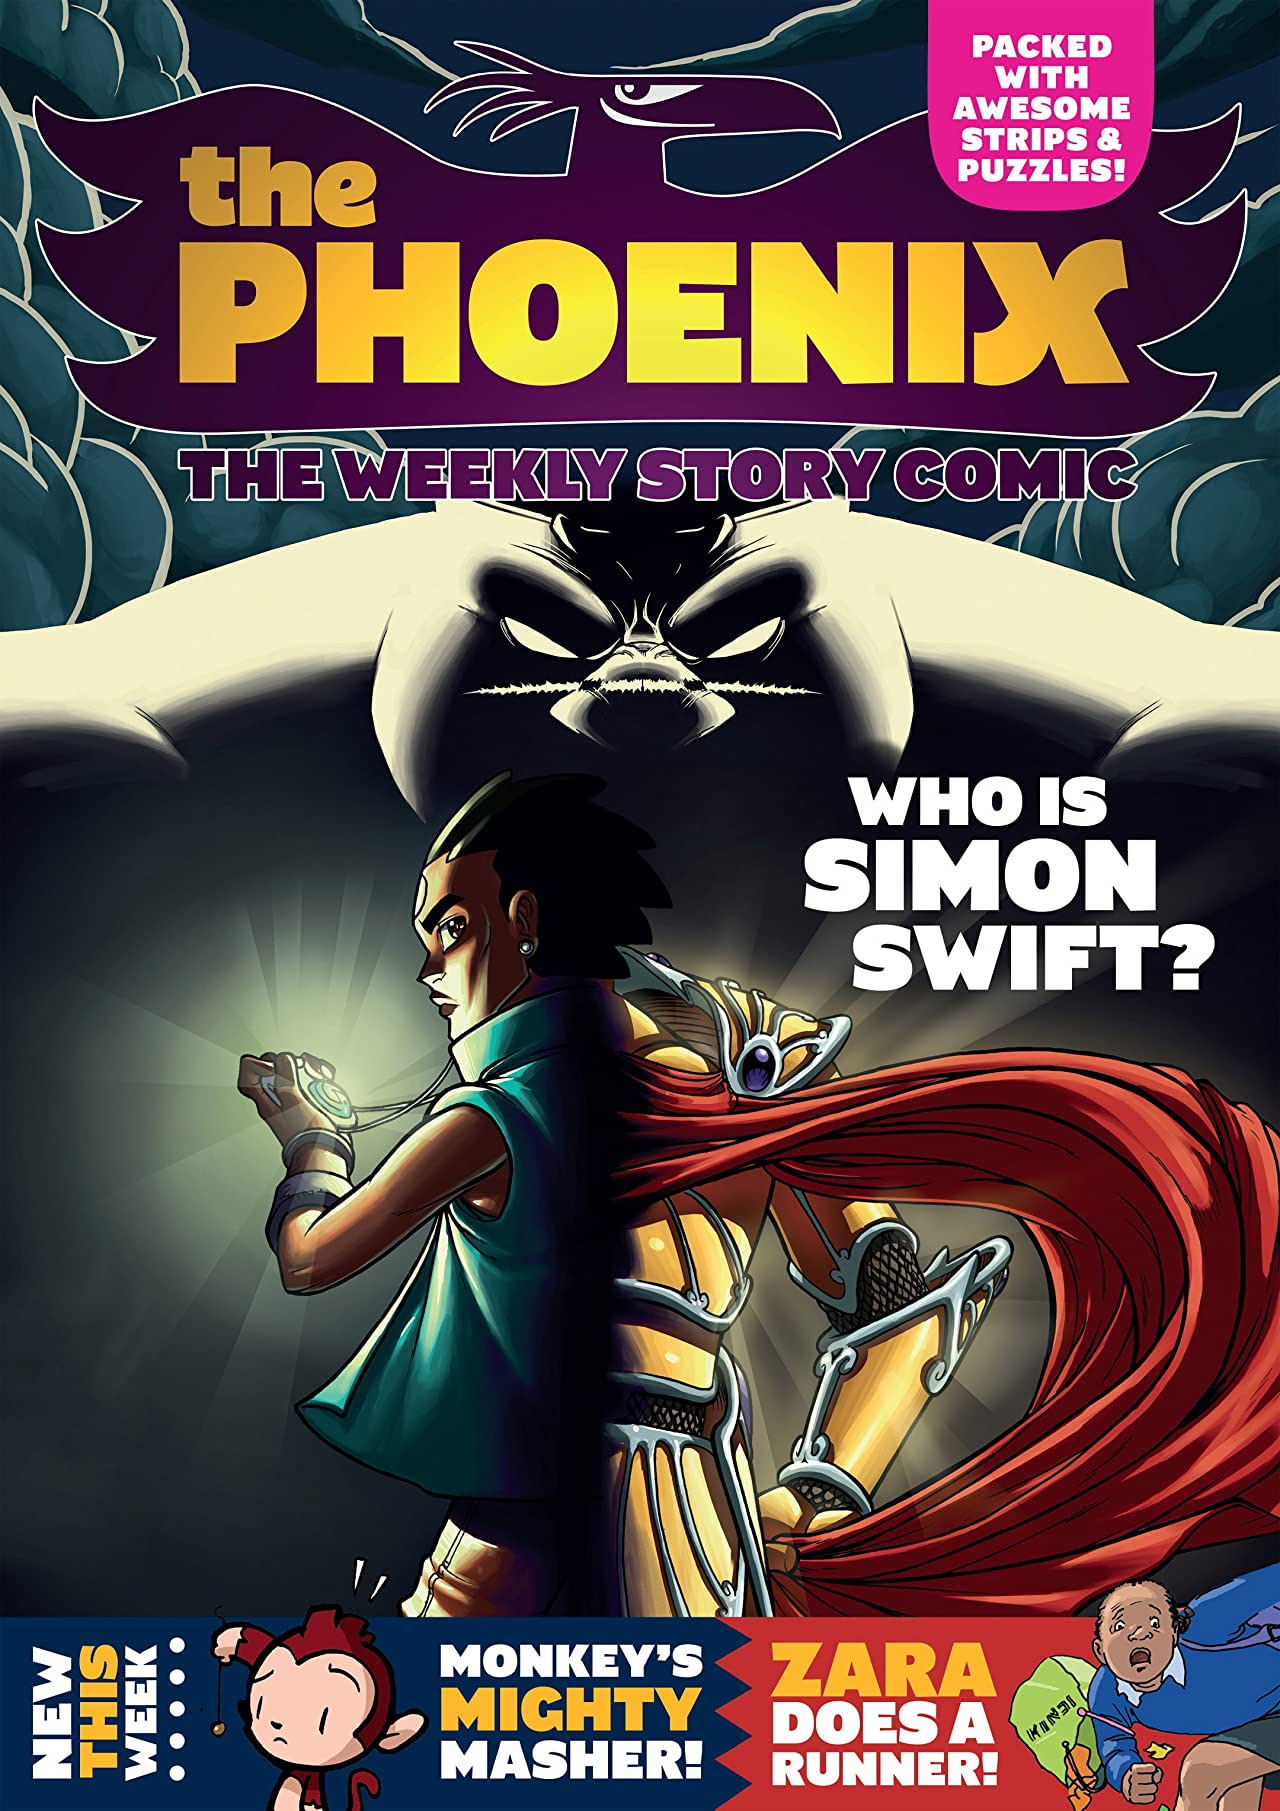 The Phoenix #38: The Weekly Story Comic